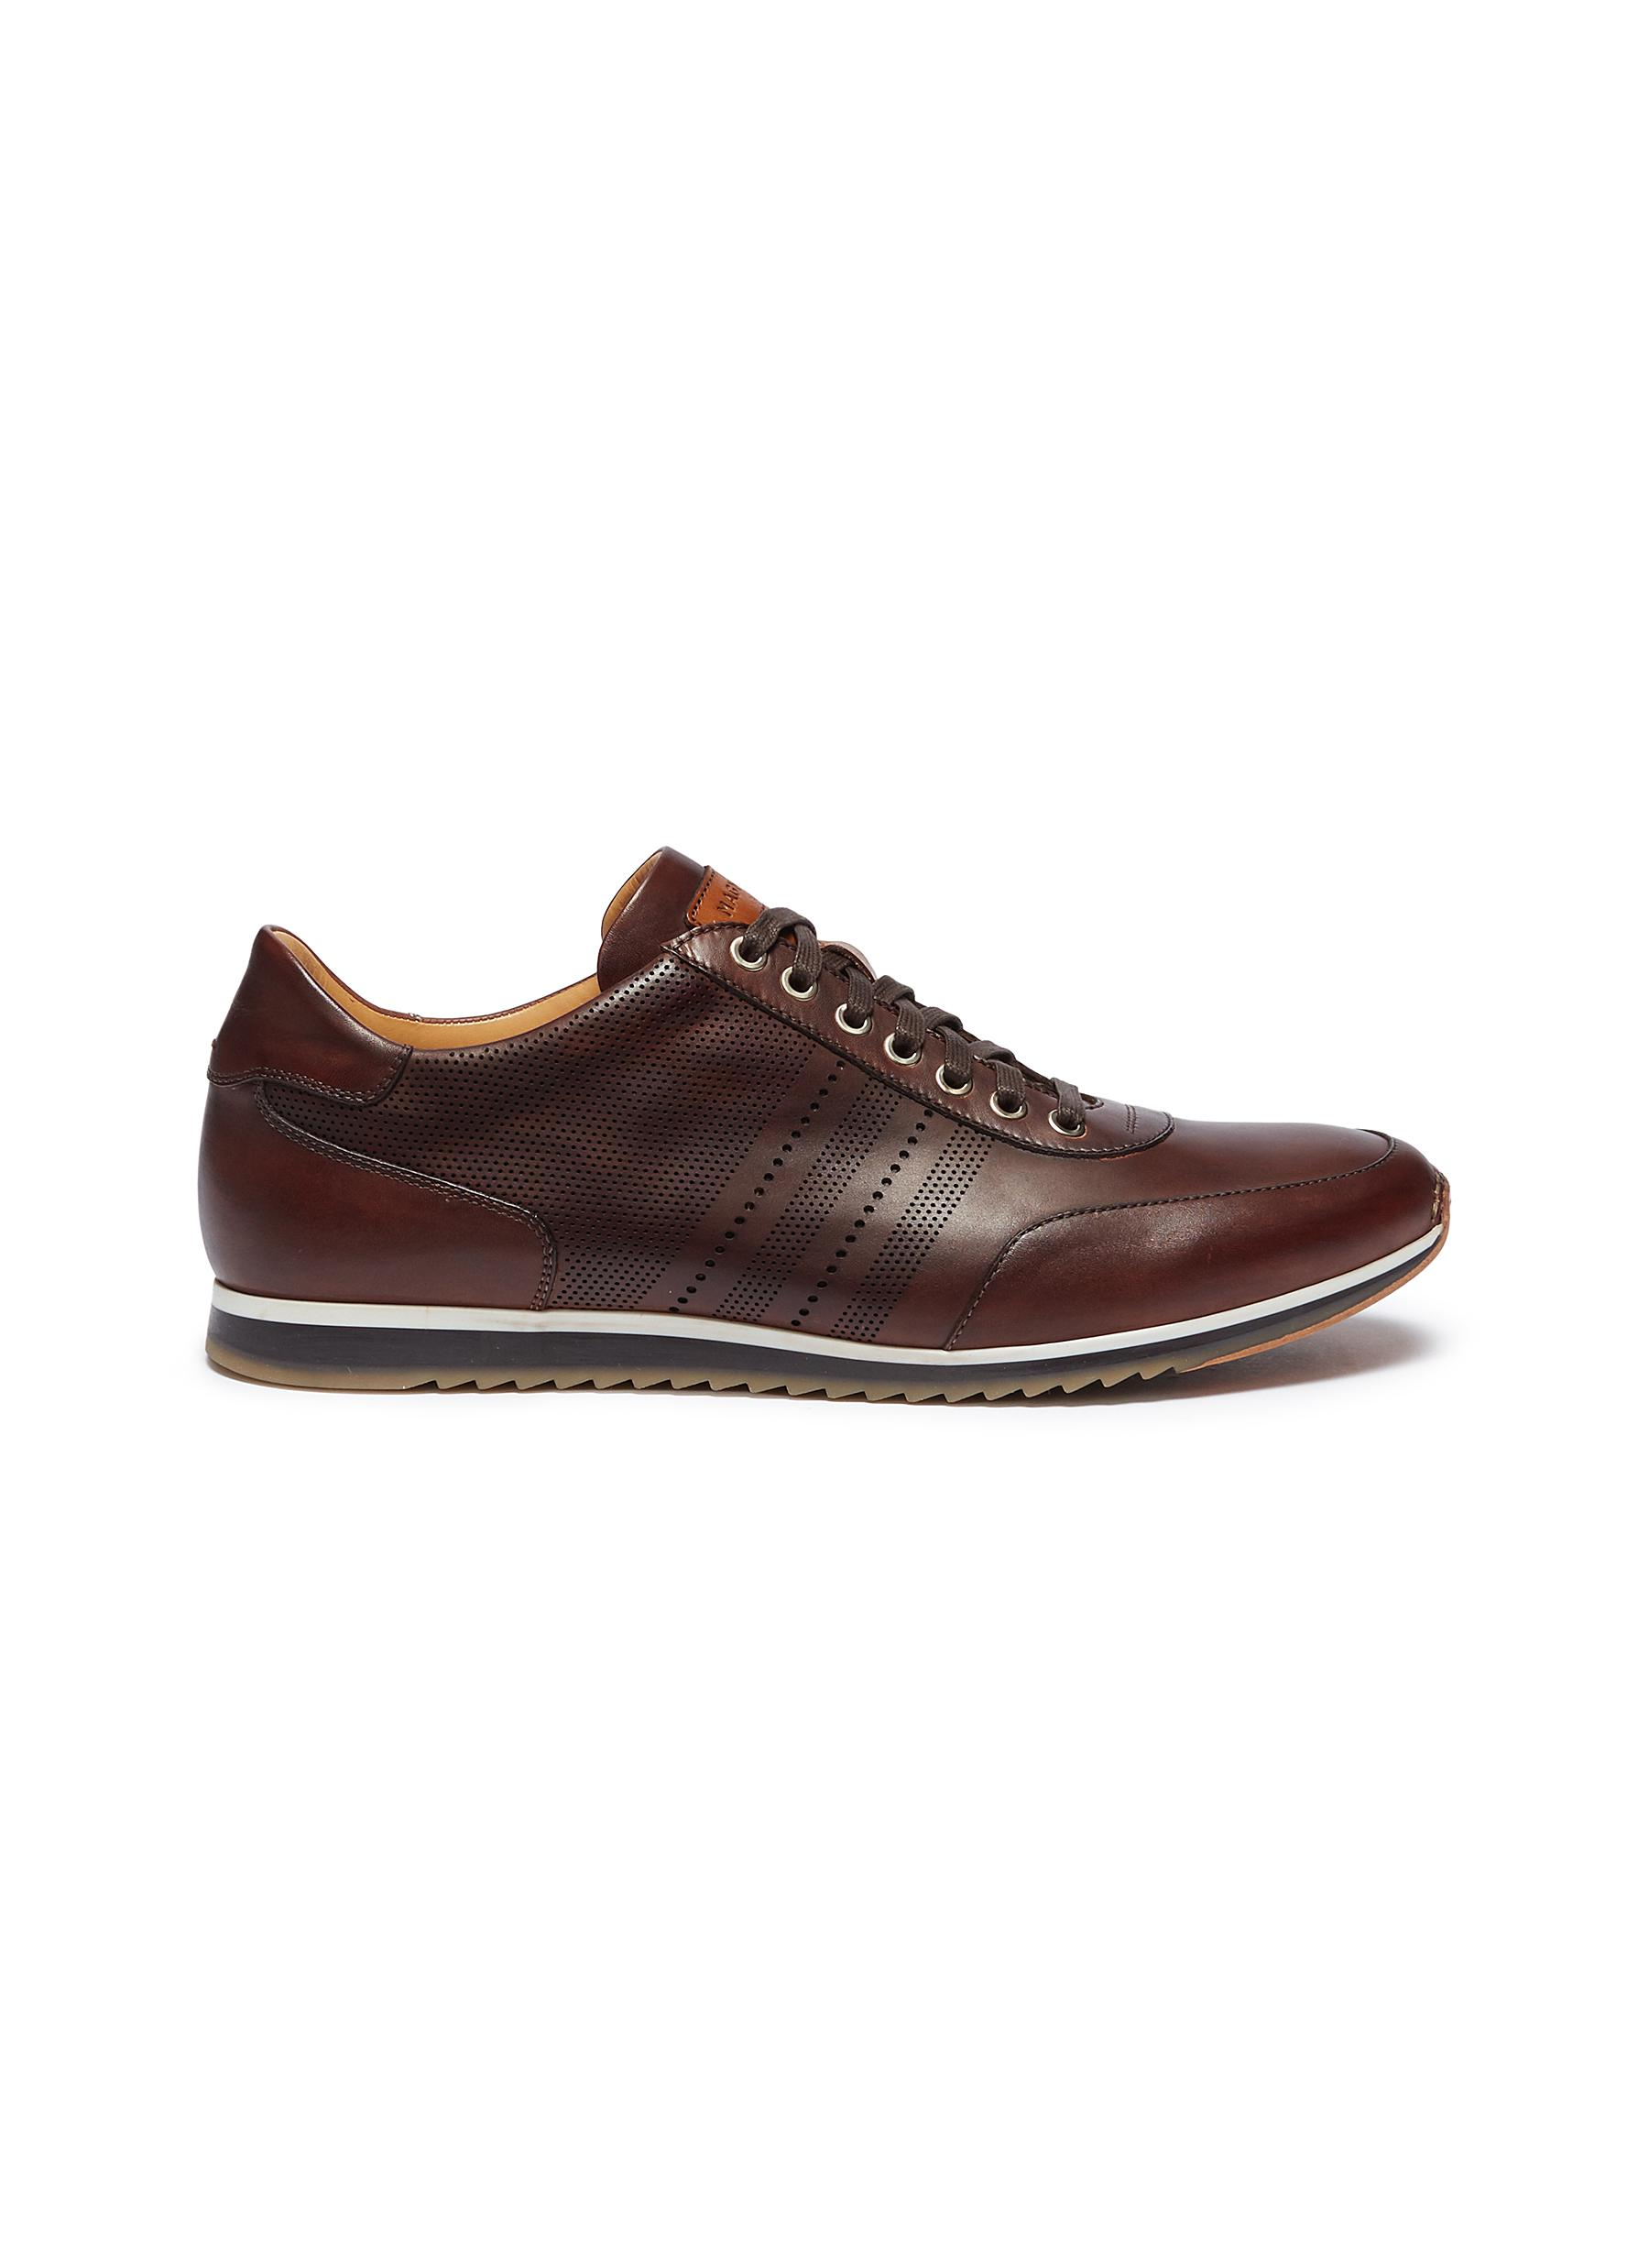 Merino perforated panel leather sneakers by Magnanni